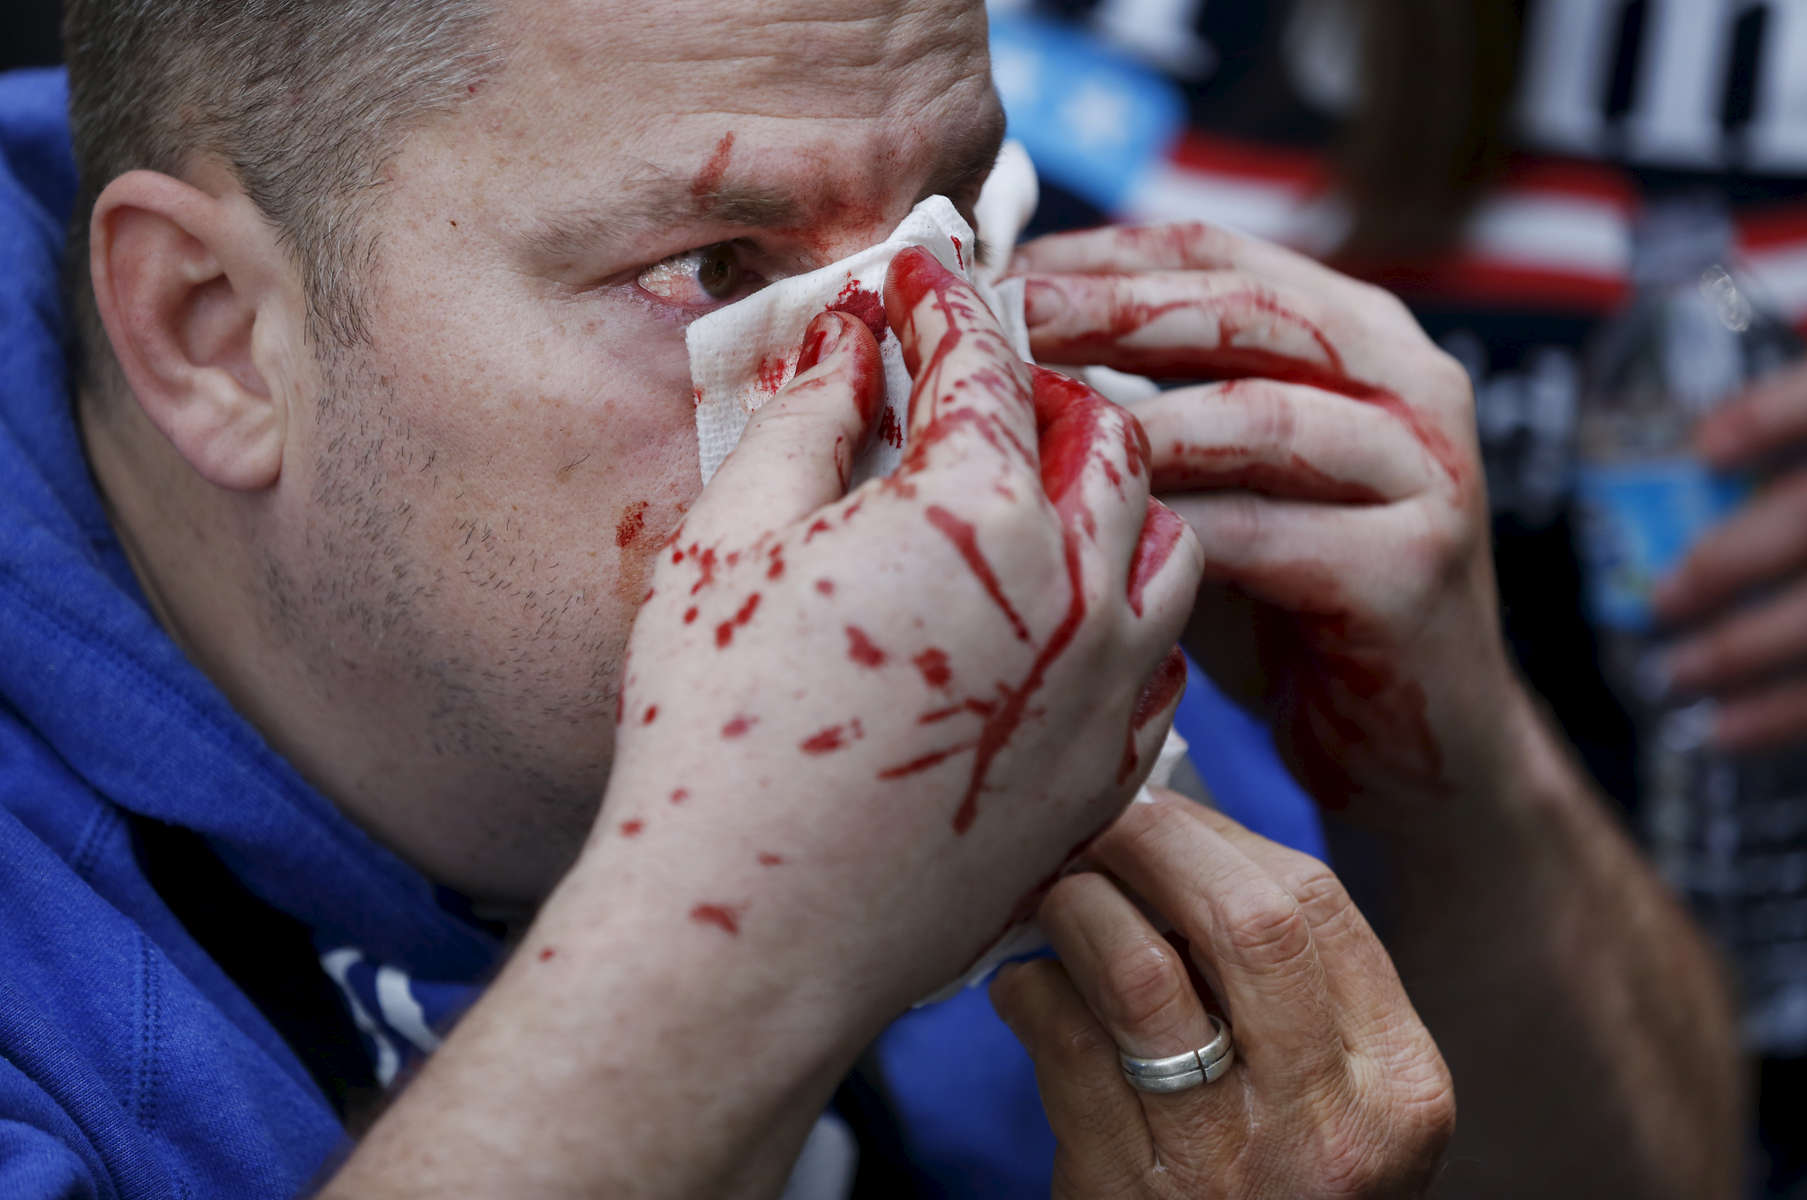 John Beavers, a pro-Trump supporter gets medical treatment after a violent skirmish broke out between anti-fascist protesters and pro-Trump supporters during a rally called {quote}Patriot's Day Free Speech Rally{quote} in Martin Luther King Jr. Civic Center Park April 15, 2017 in Berkeley, Calif.